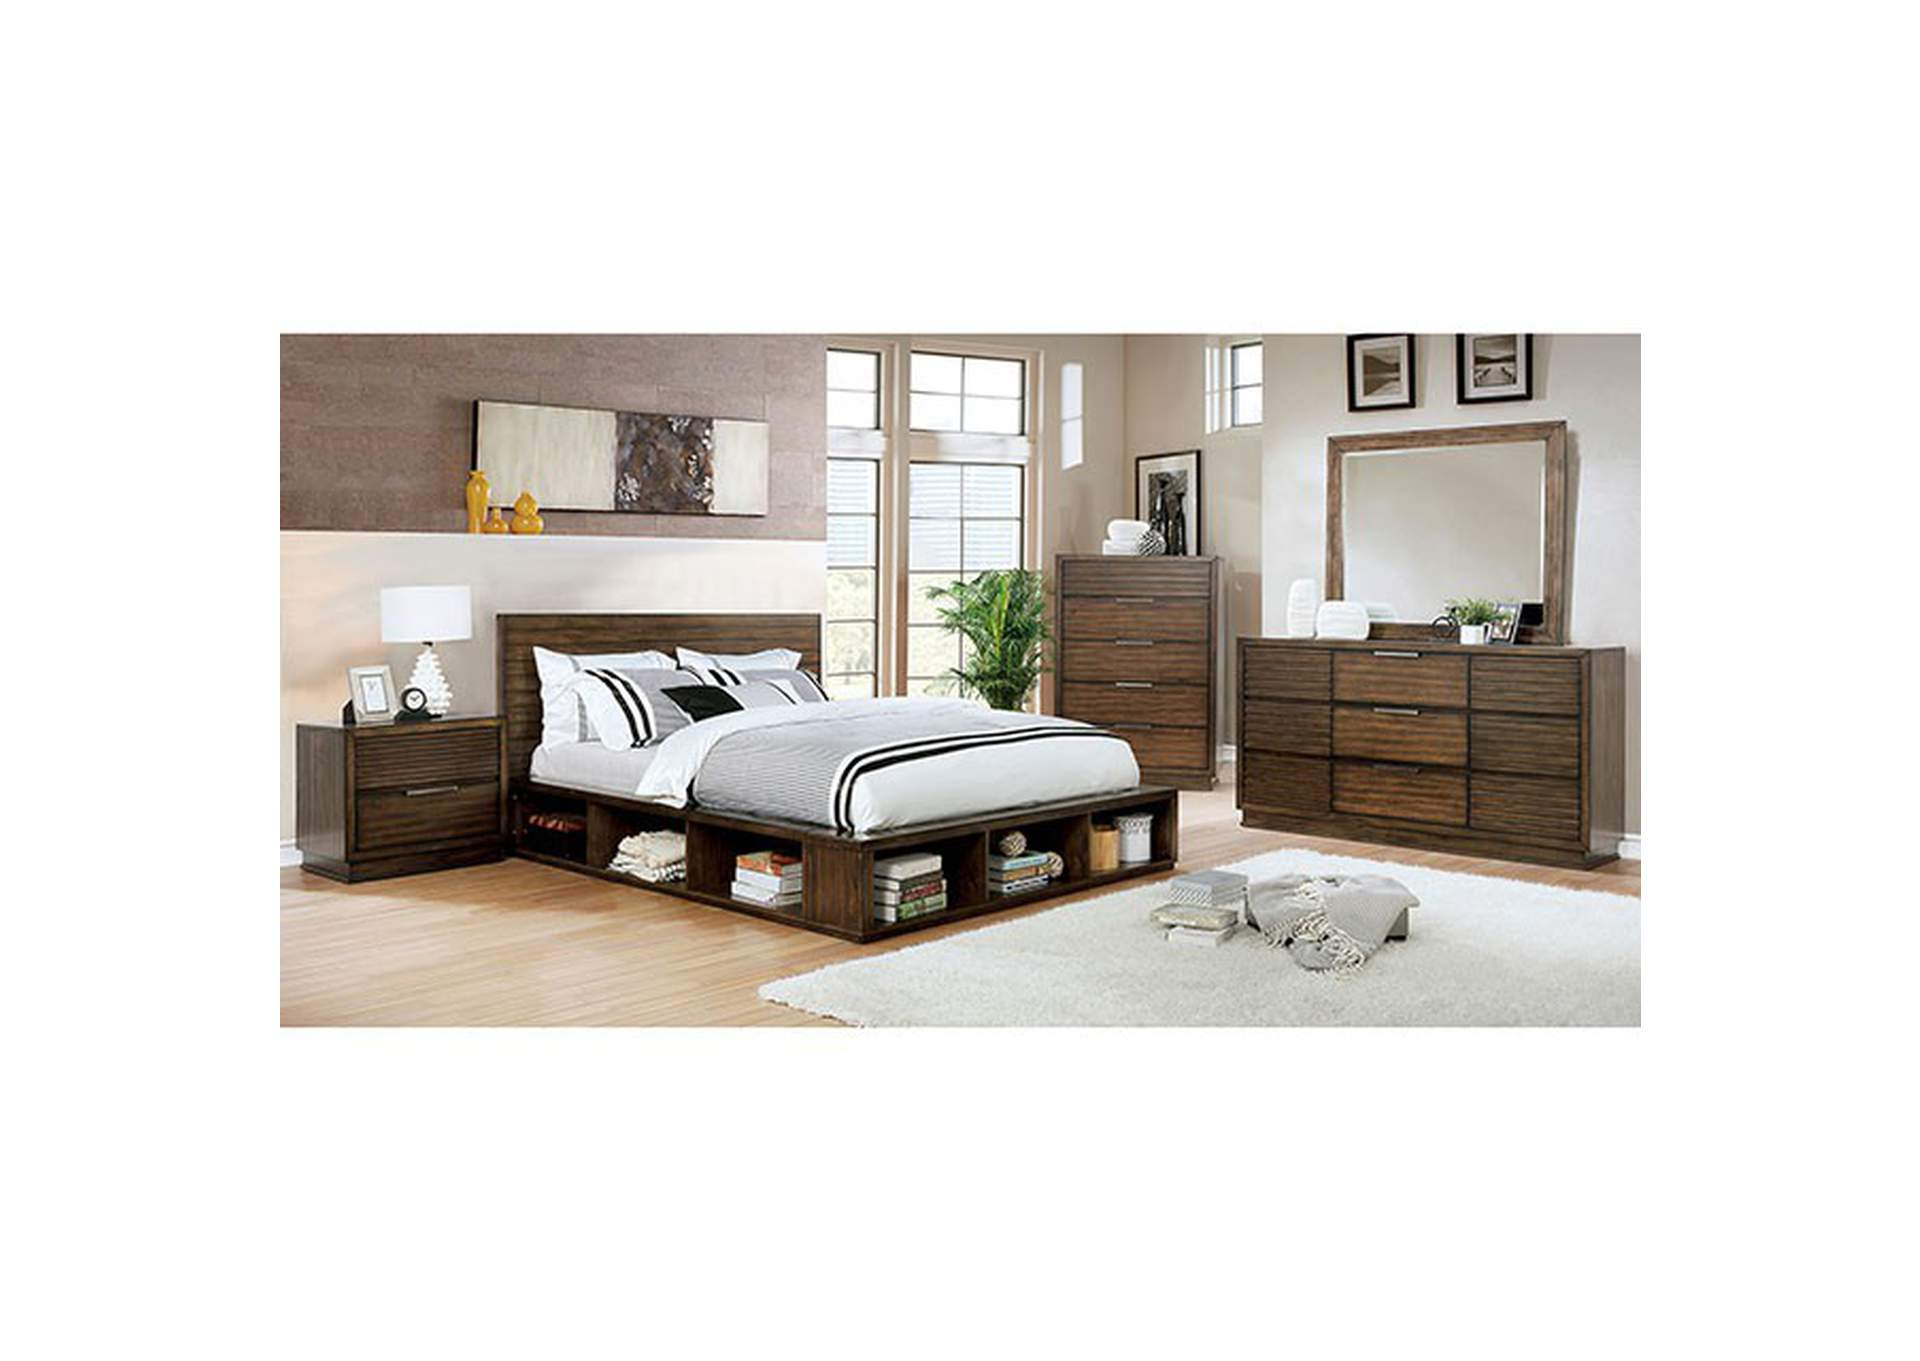 Tolna Brown California King Storage Platform Bed,Furniture of America